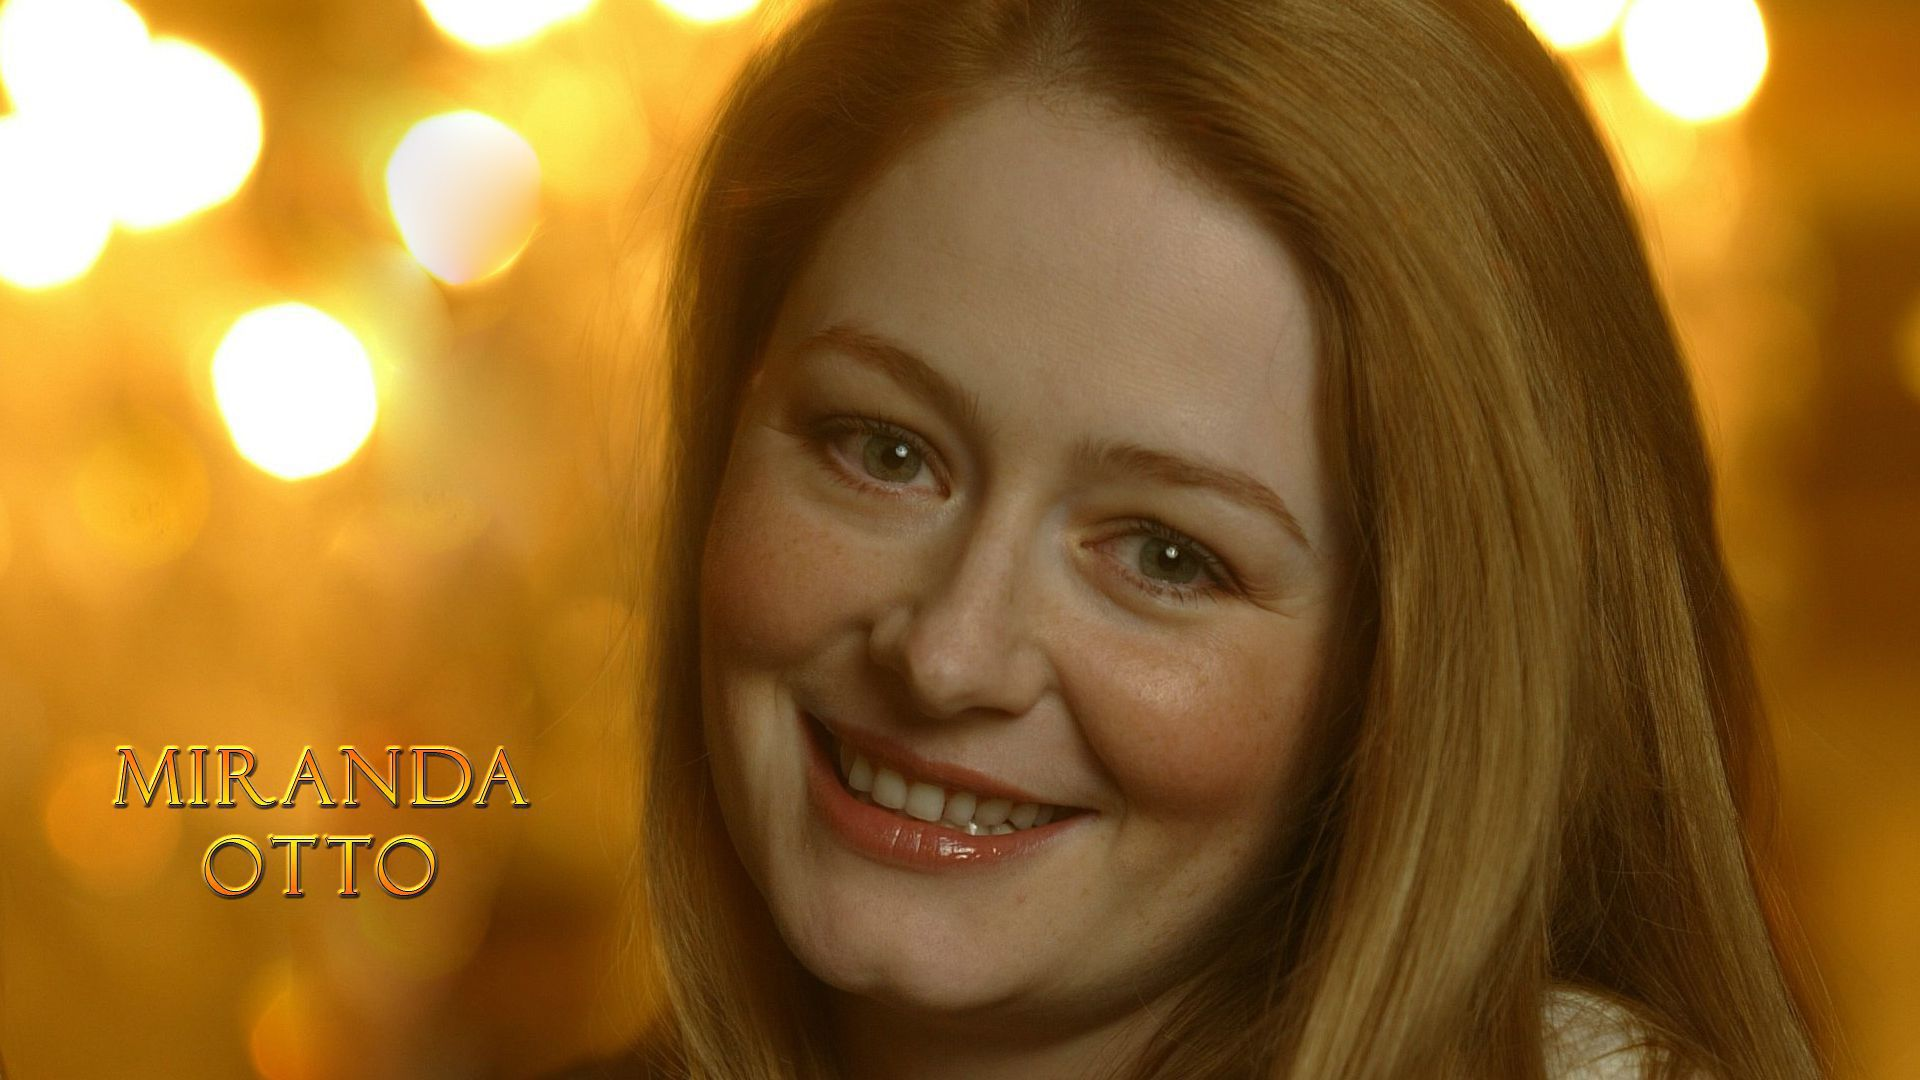 Miranda otto and other girls emma039s war - 2 1